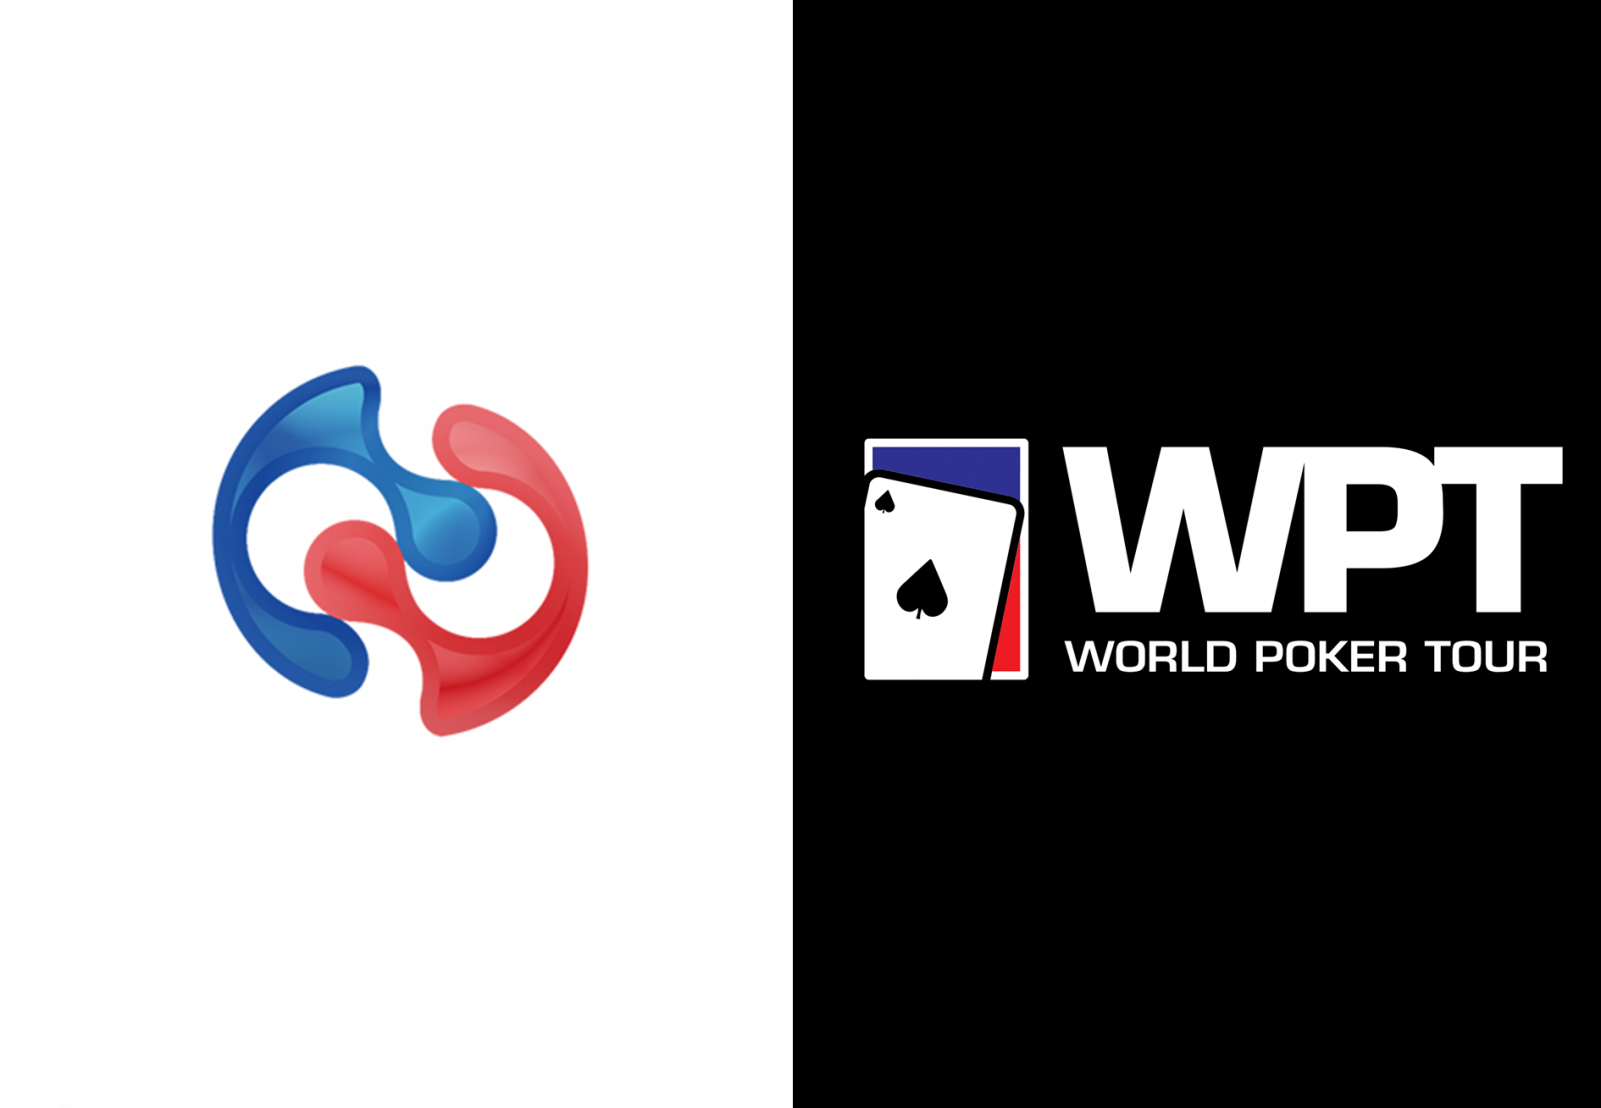 Allied Esports sells World Poker Tour, explores options for esports business